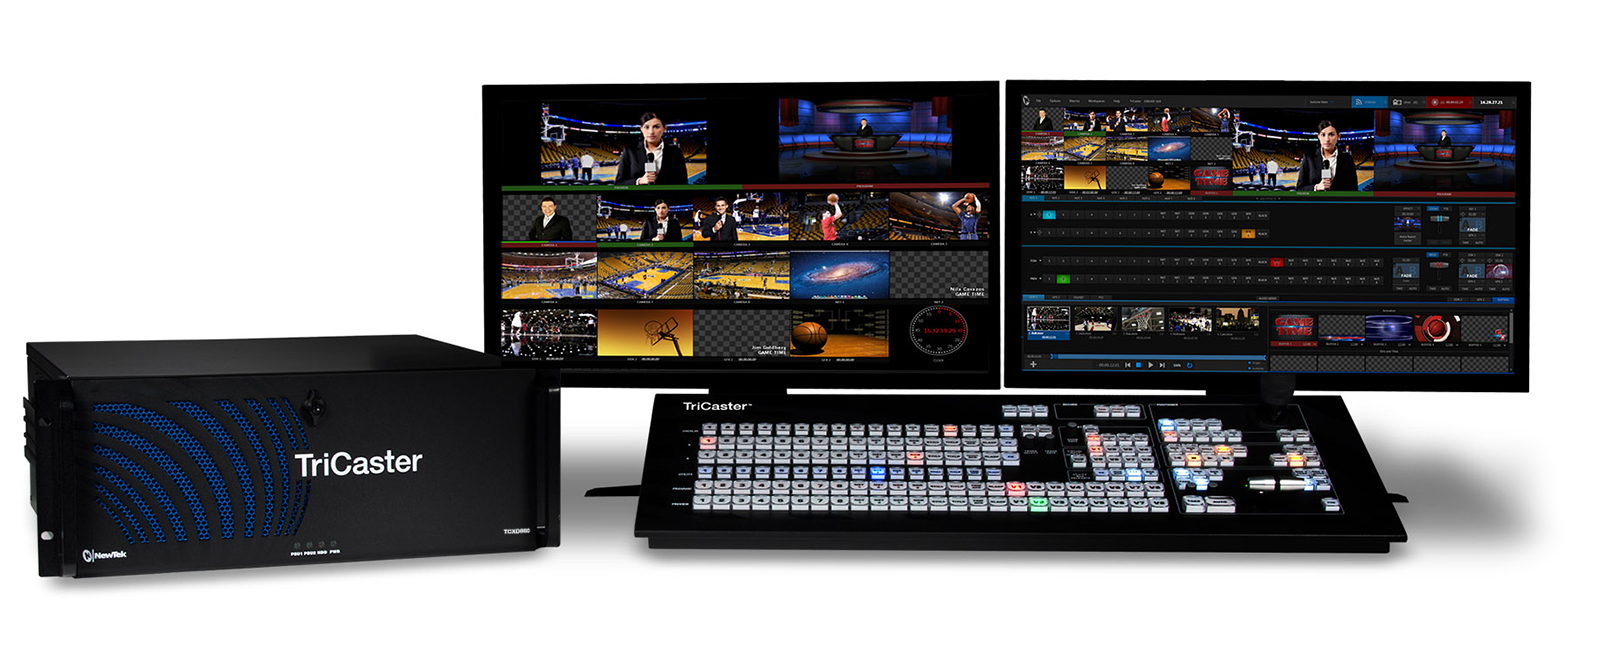 Newtek TriCaster 860 and CS